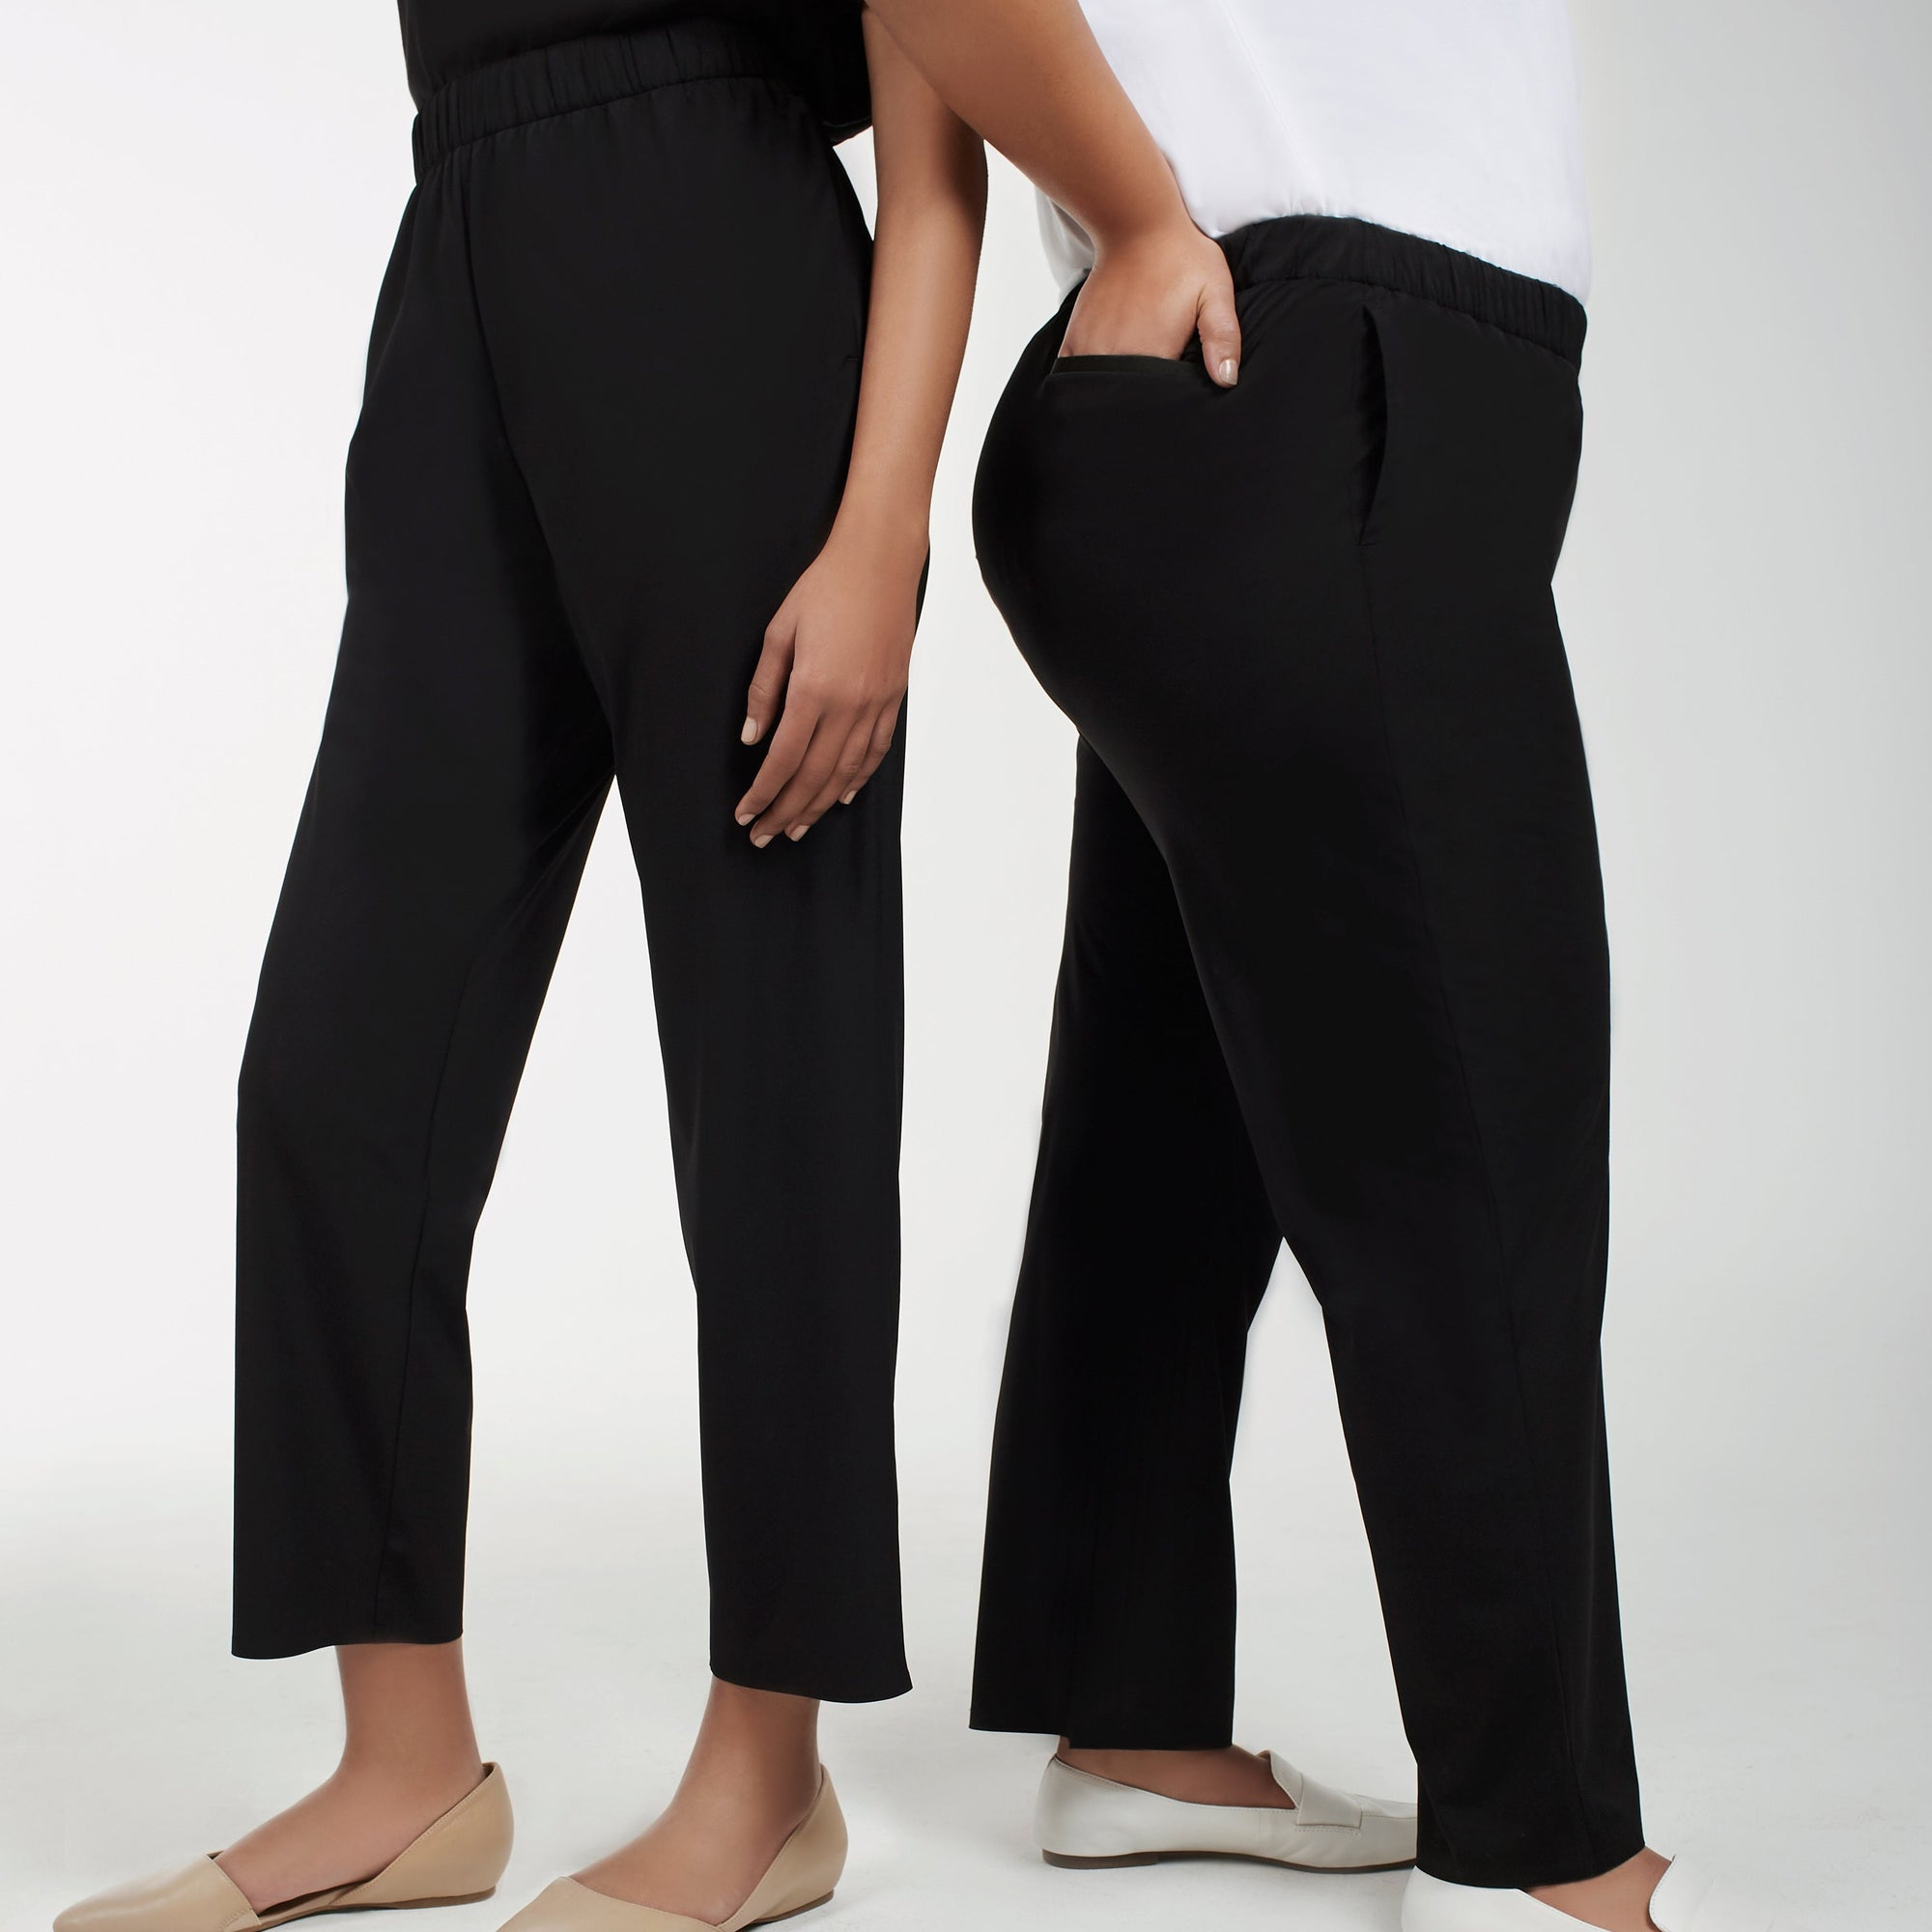 Ankle Length Black Trousers